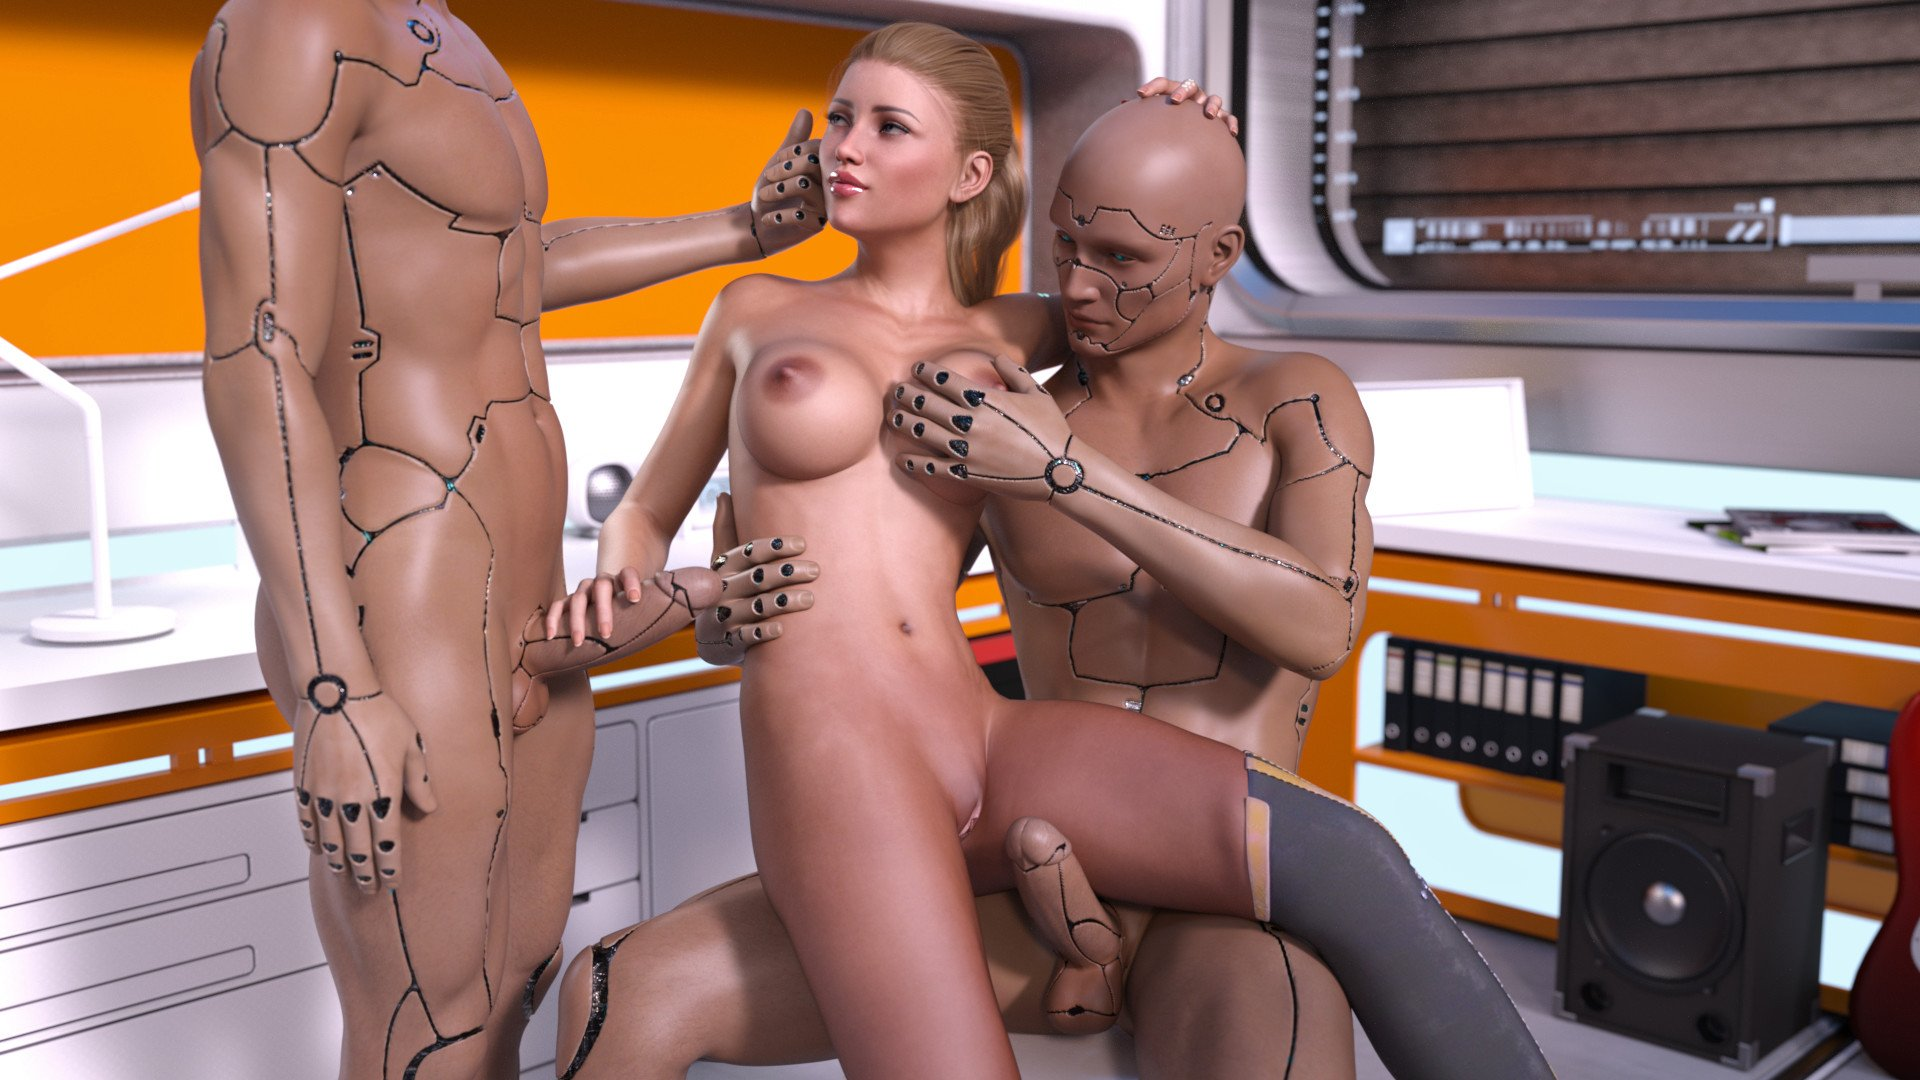 Cyber sex bots, yvette bova sucks cock